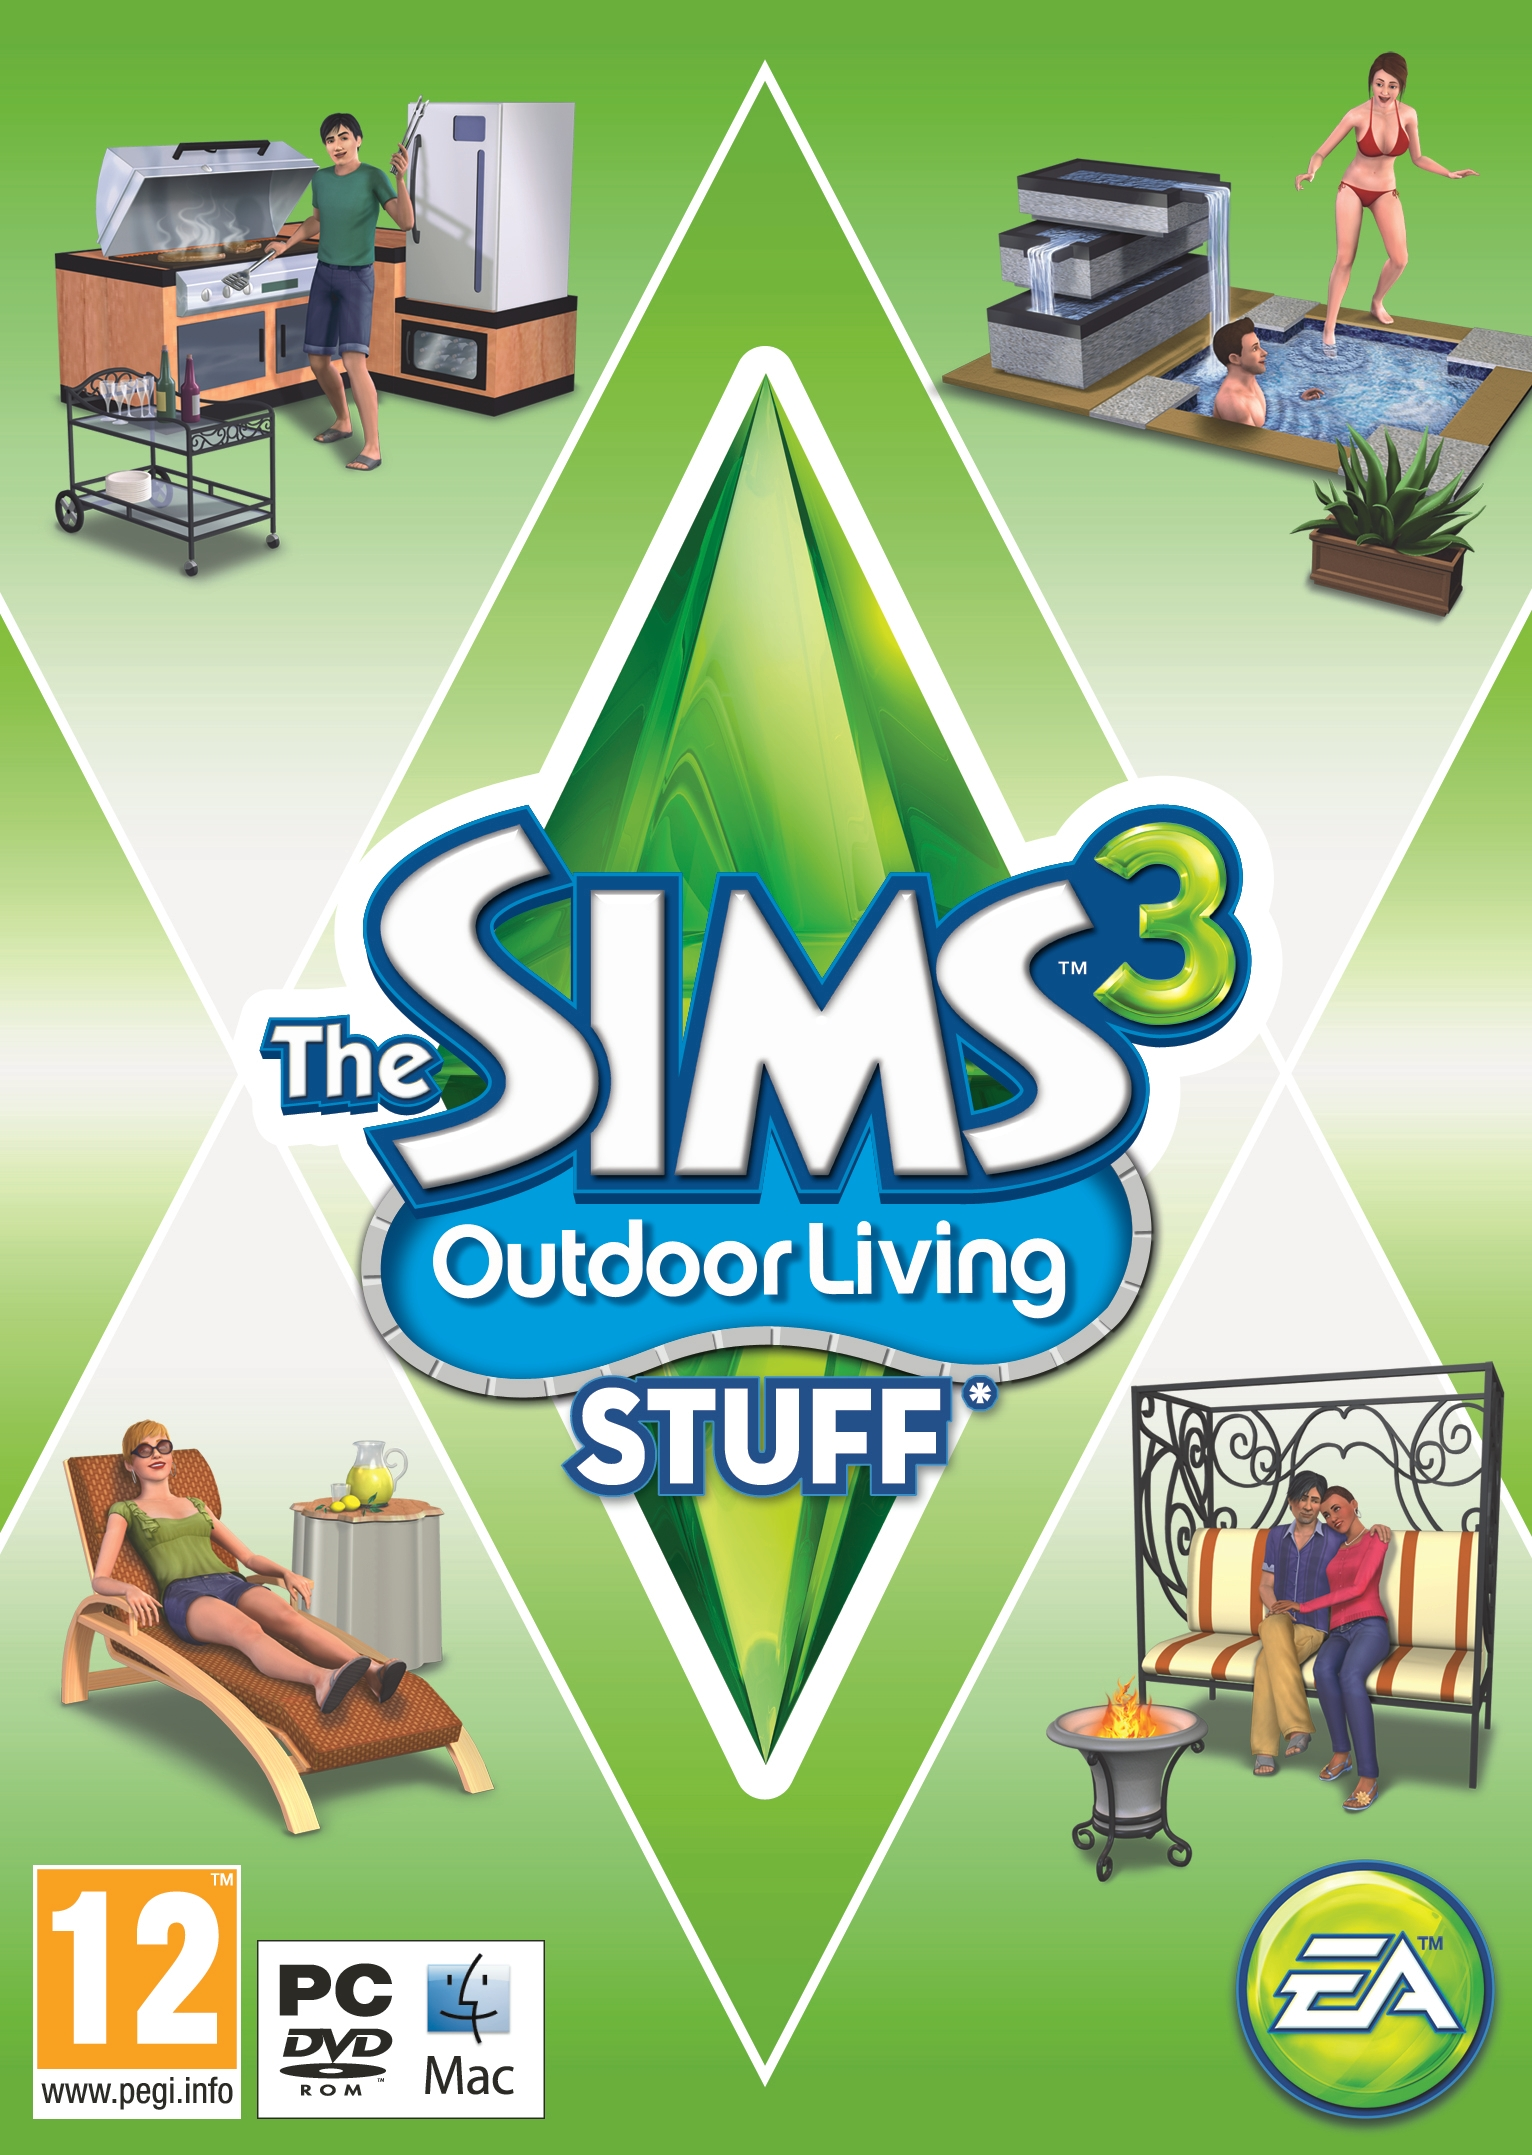 EA announces The Sims 3: Outdoor Living Stuff Pack! — The Sims Forums